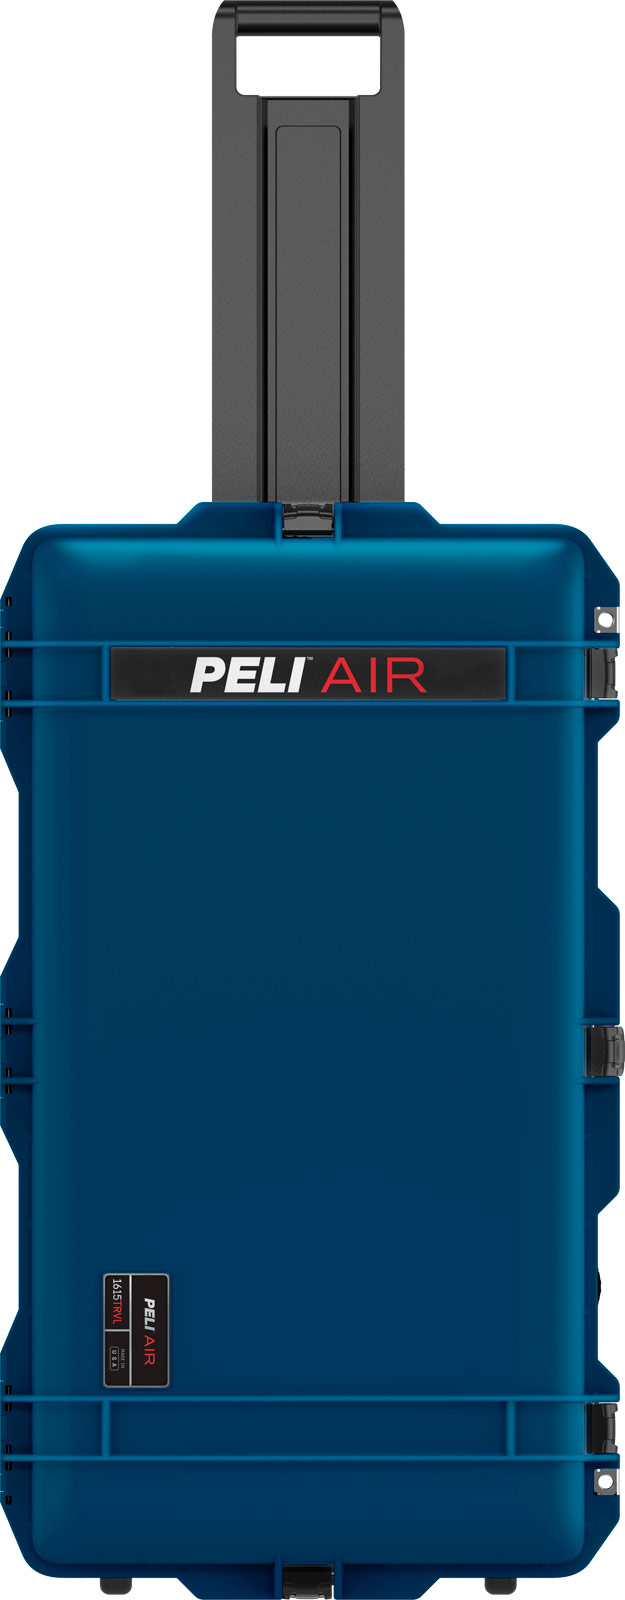 peli 1615 travel wheeled luggage case